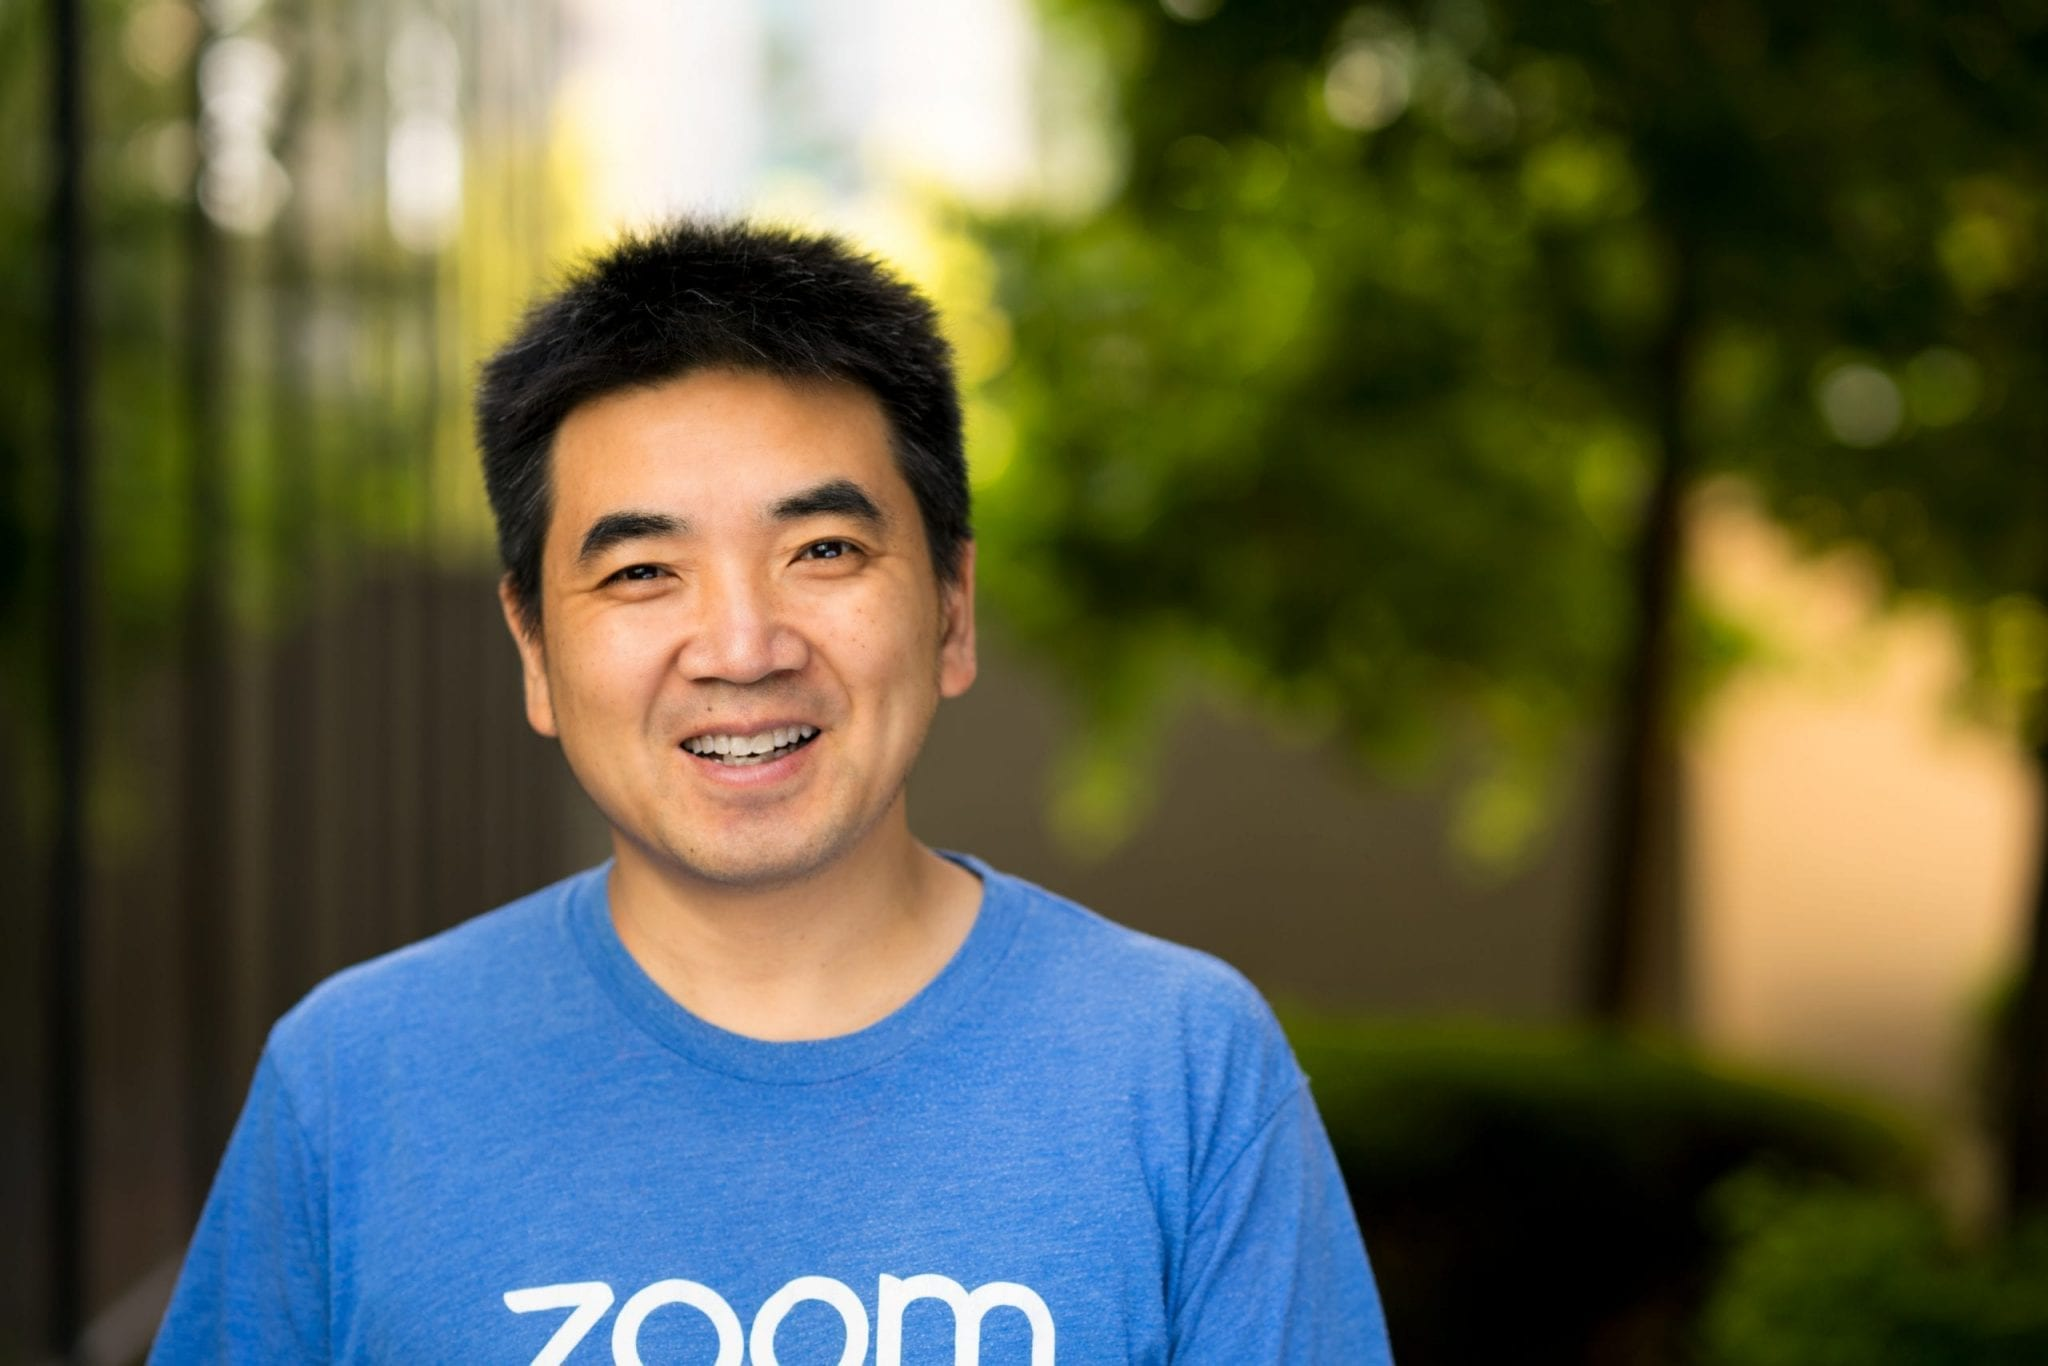 Zoom CEO: The future of work is hybrid